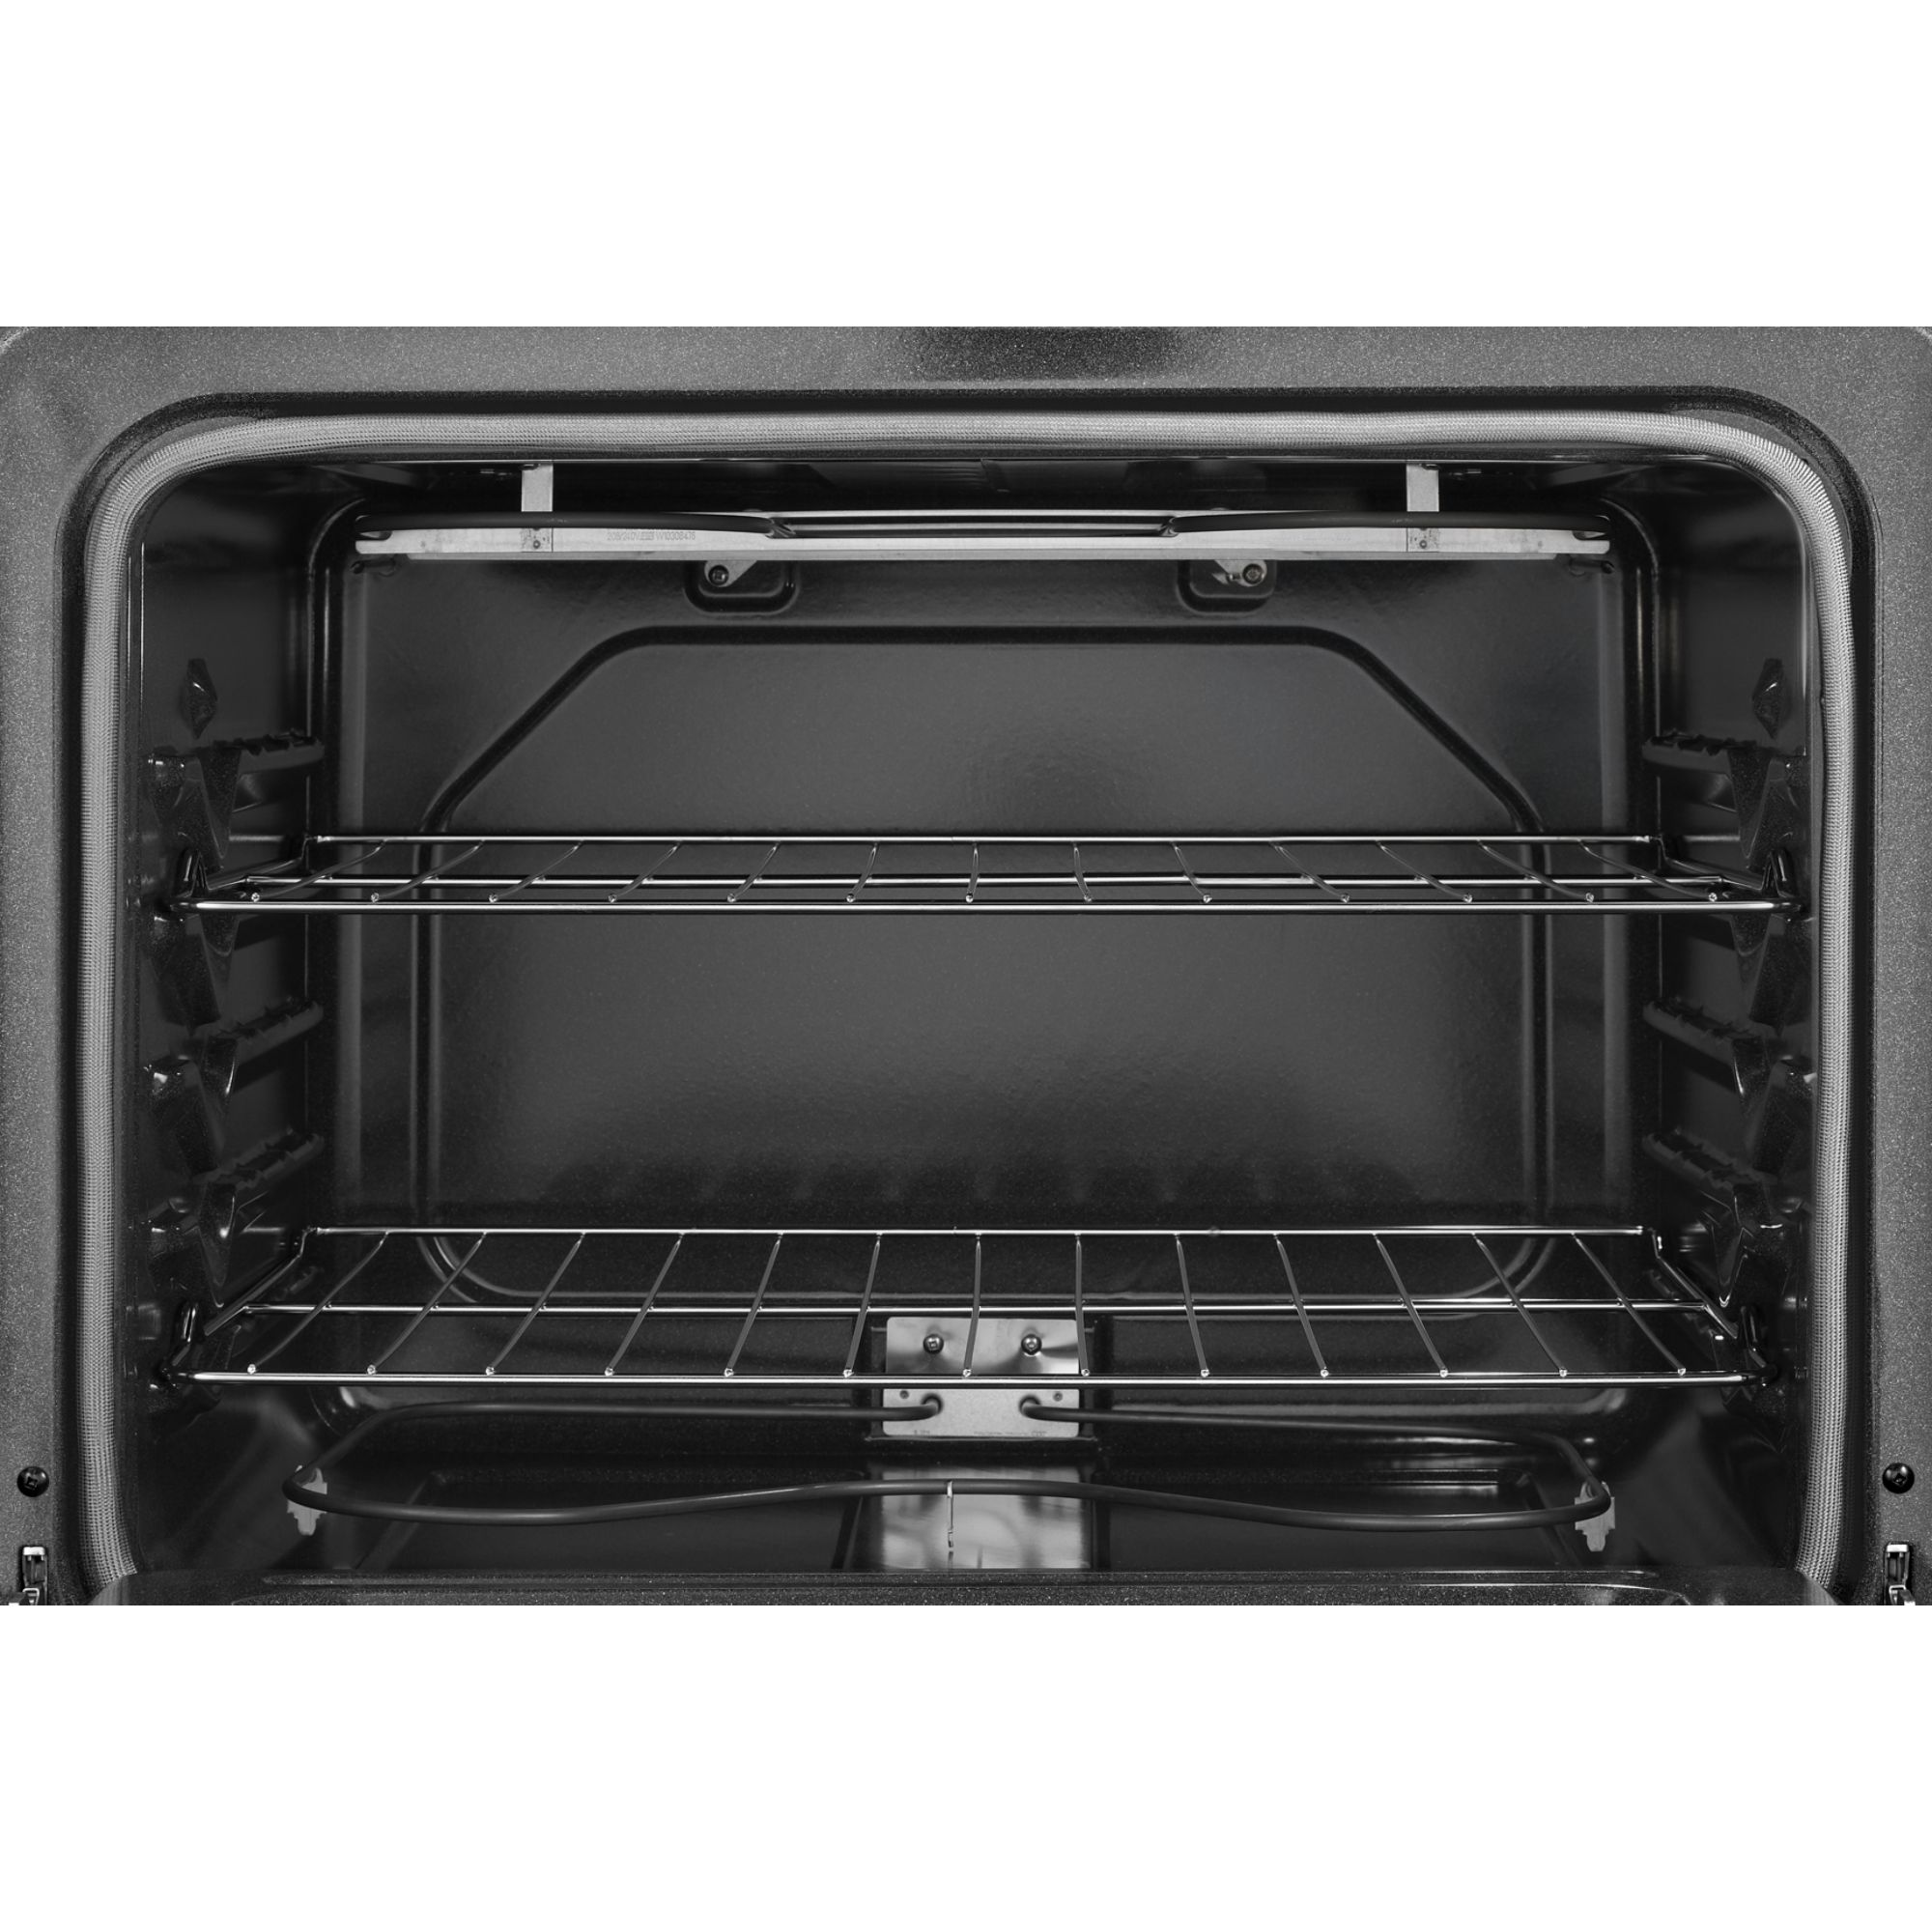 Whirlpool 4.8 cu. ft. Electric Range w/ Custom Broil - White